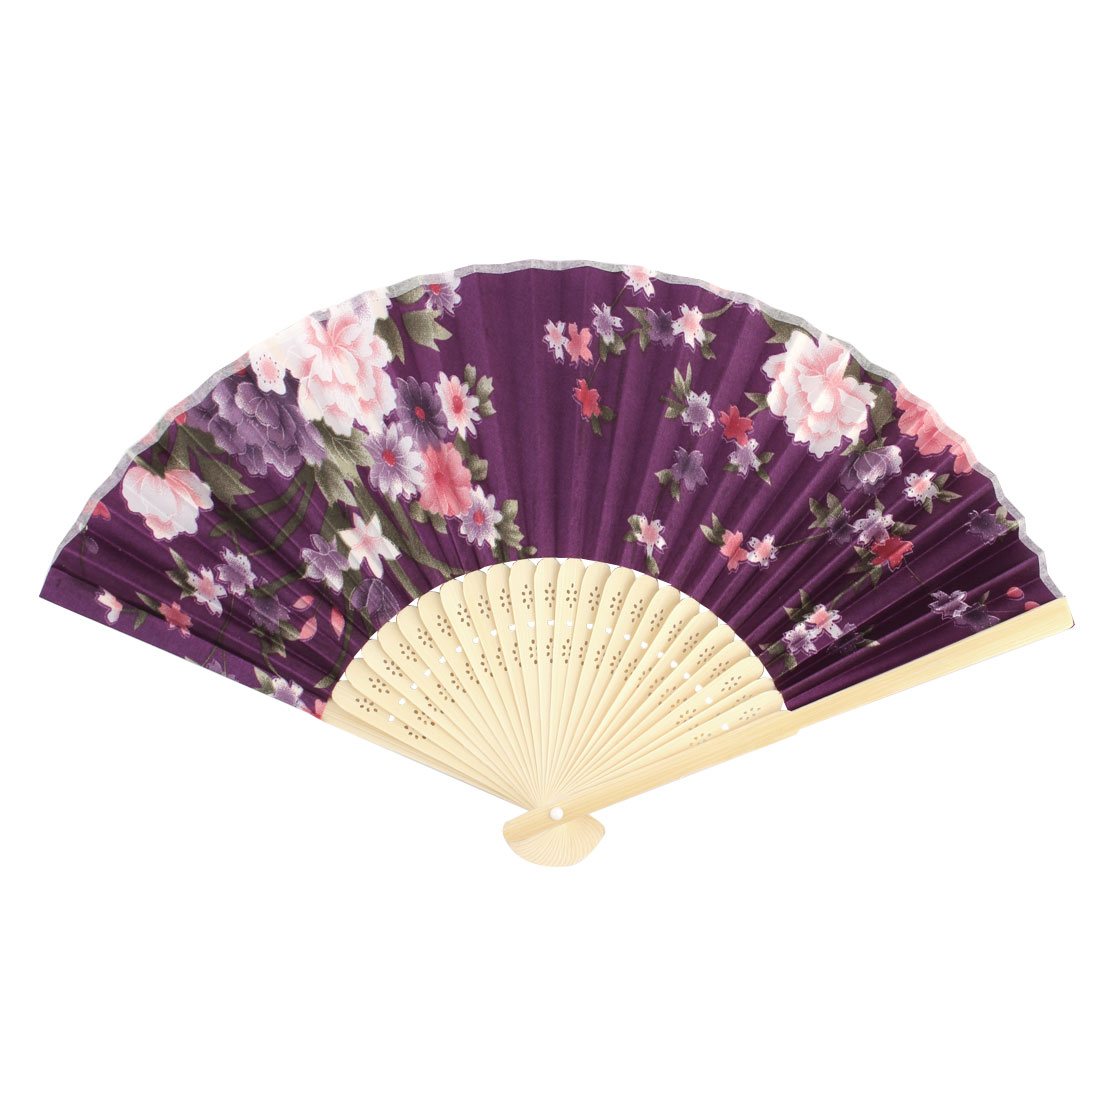 Lady Bamboo Ribs Floral Pattern Chinese Style Summer Folding Cooling Fan Purple